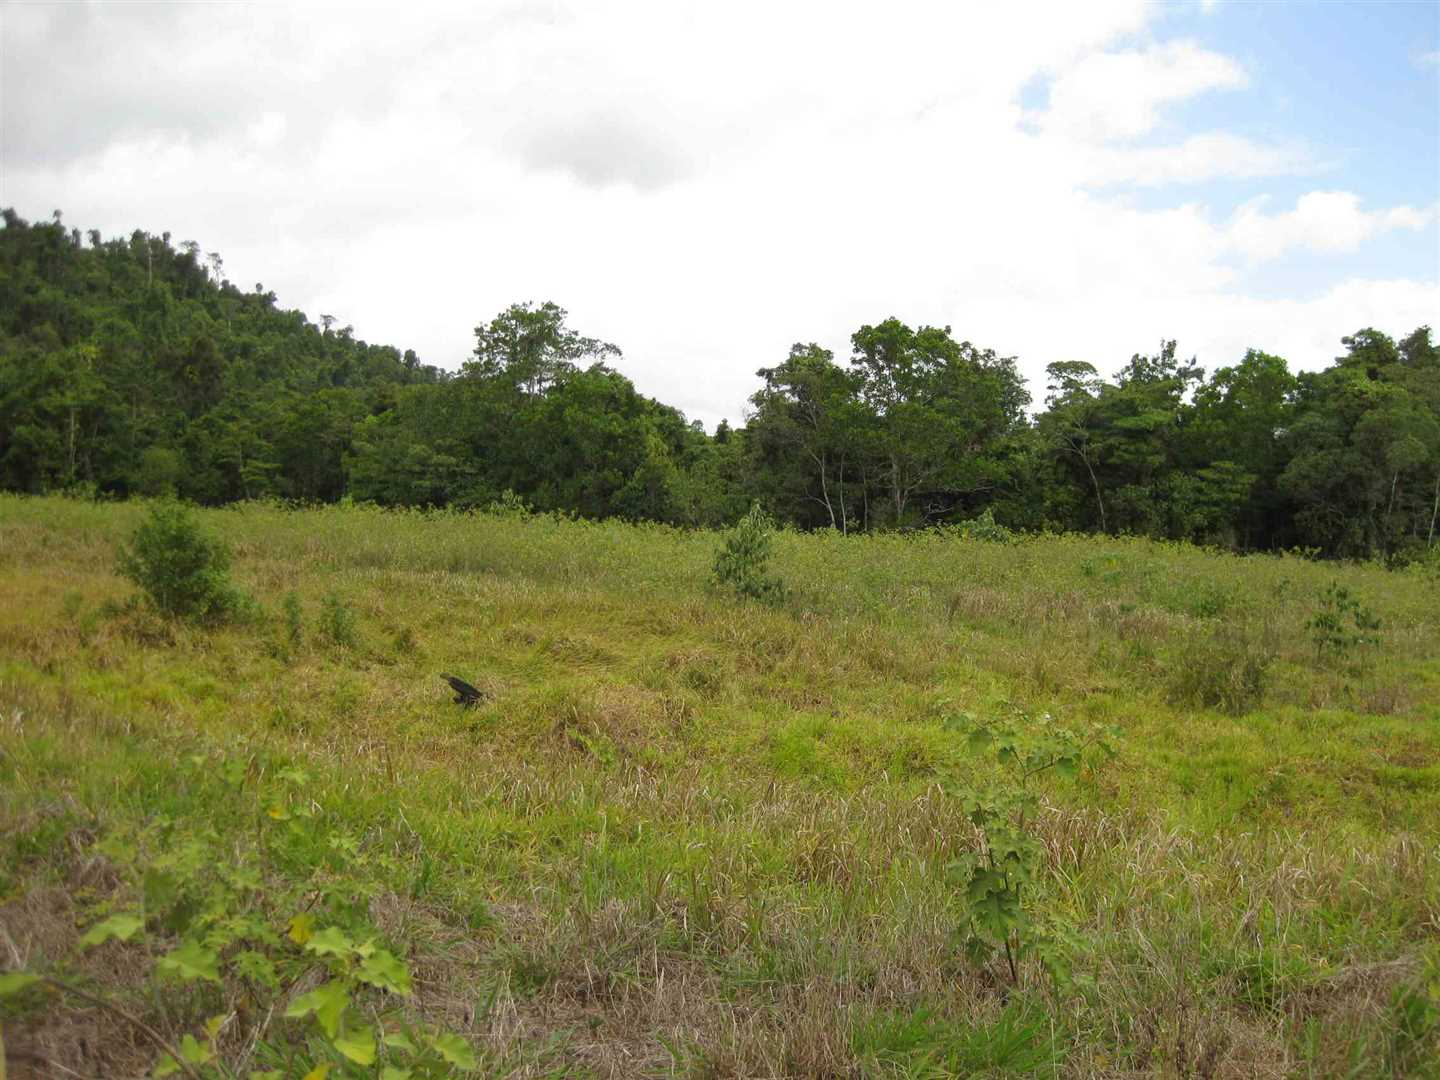 View of part of property showing some cleared undeveloped land, photo 2